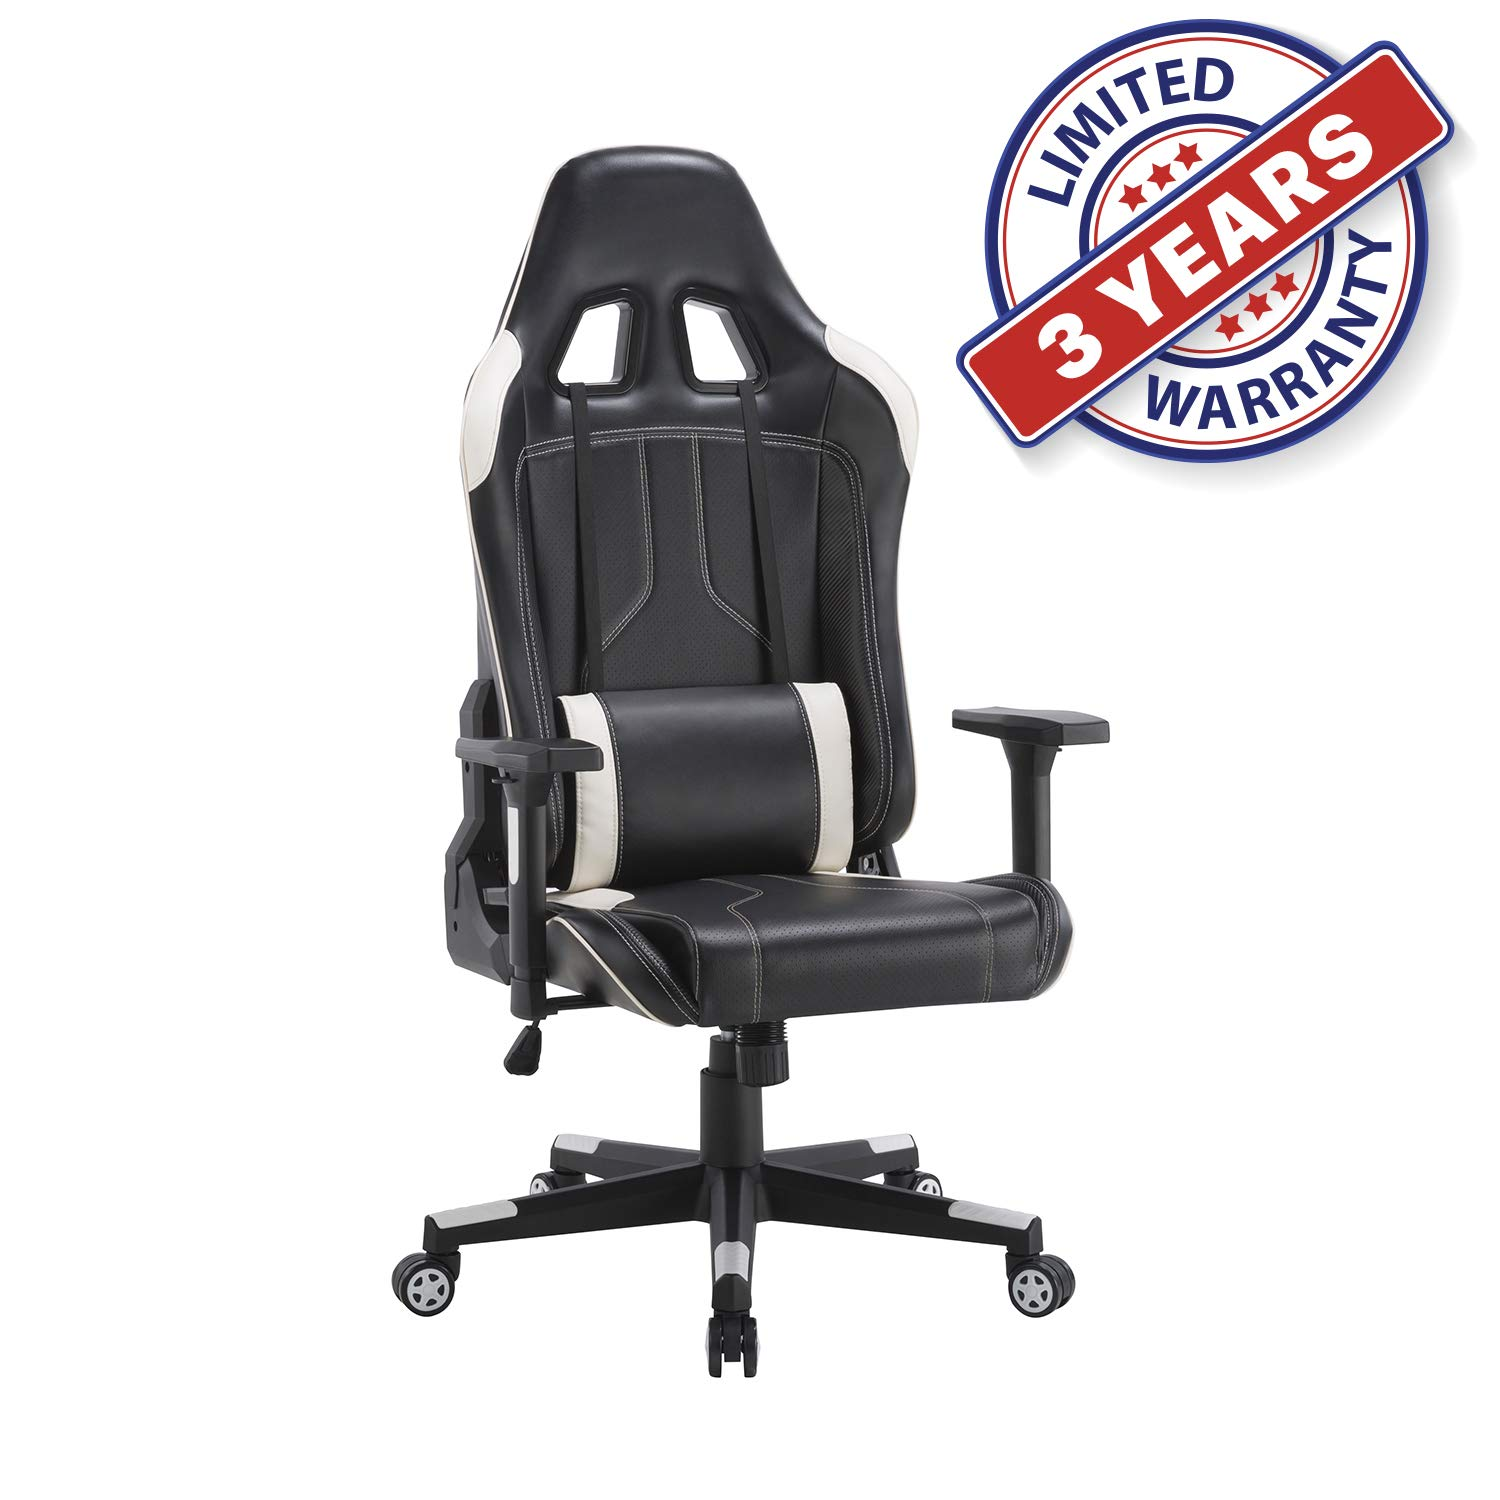 Ergonomic Racing Office Chair Swivel Style With Adjustable